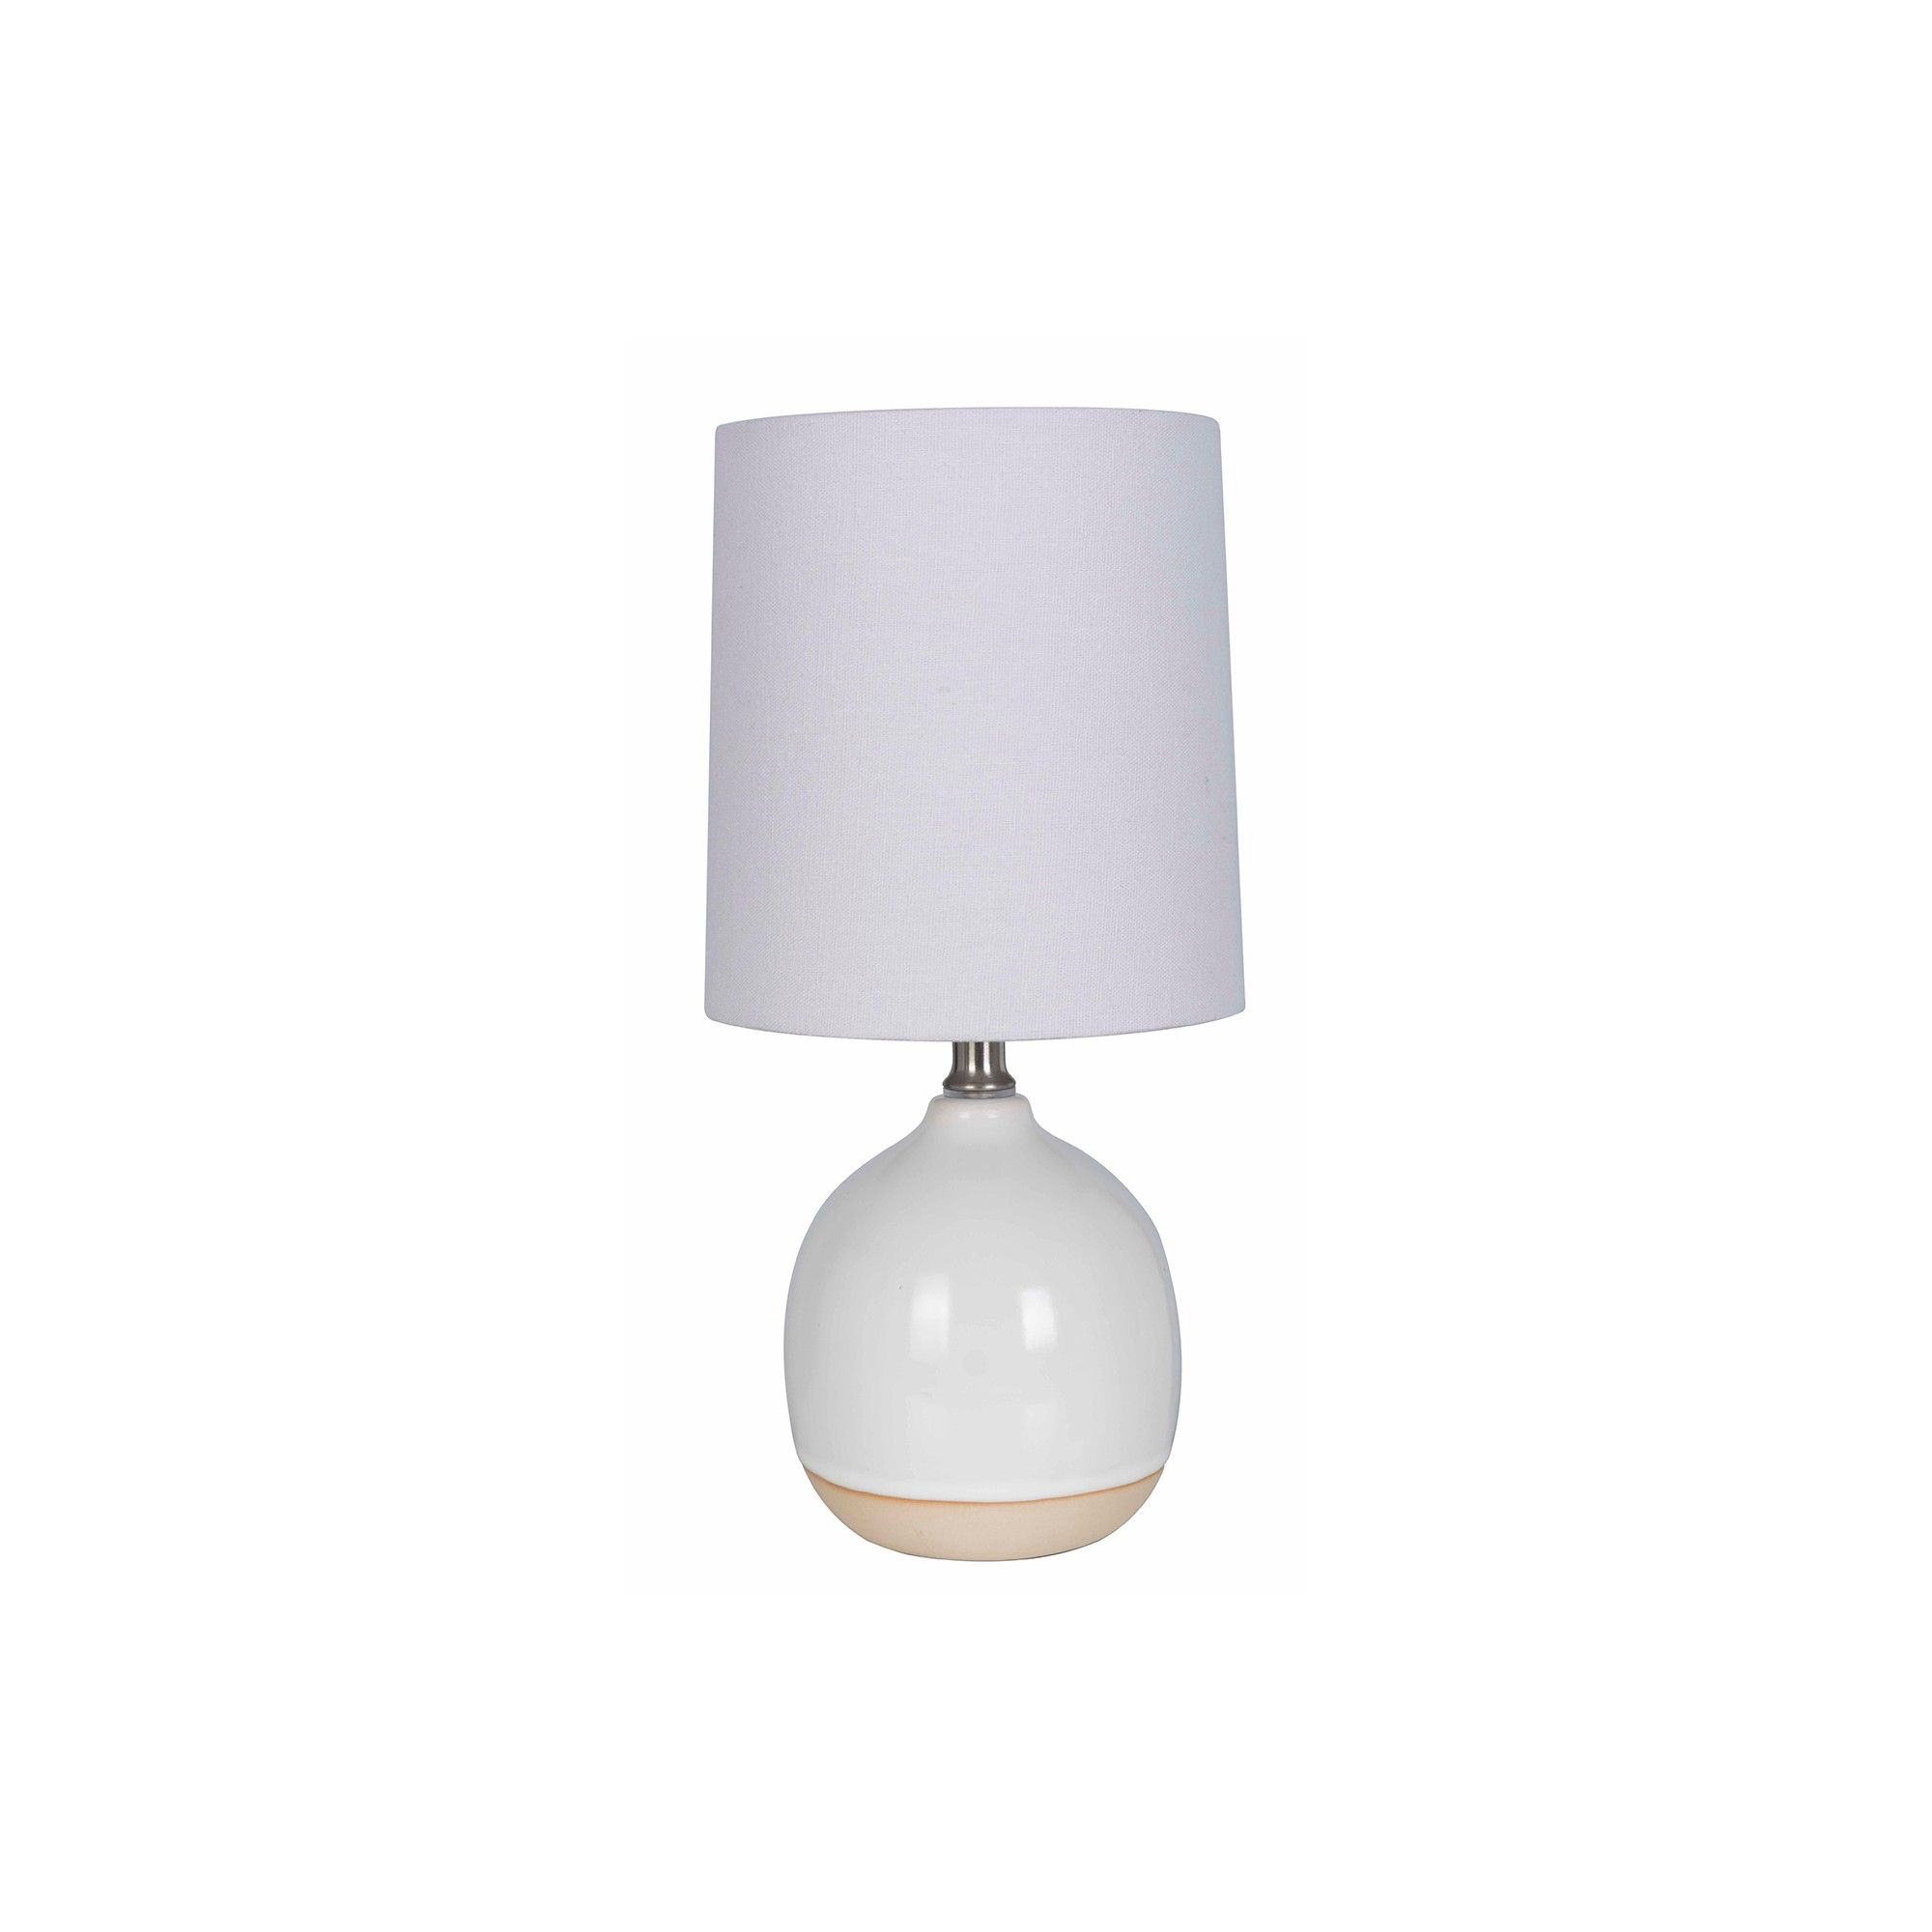 Round Ceramic Table Lamp White Lamp Only Threshold Table